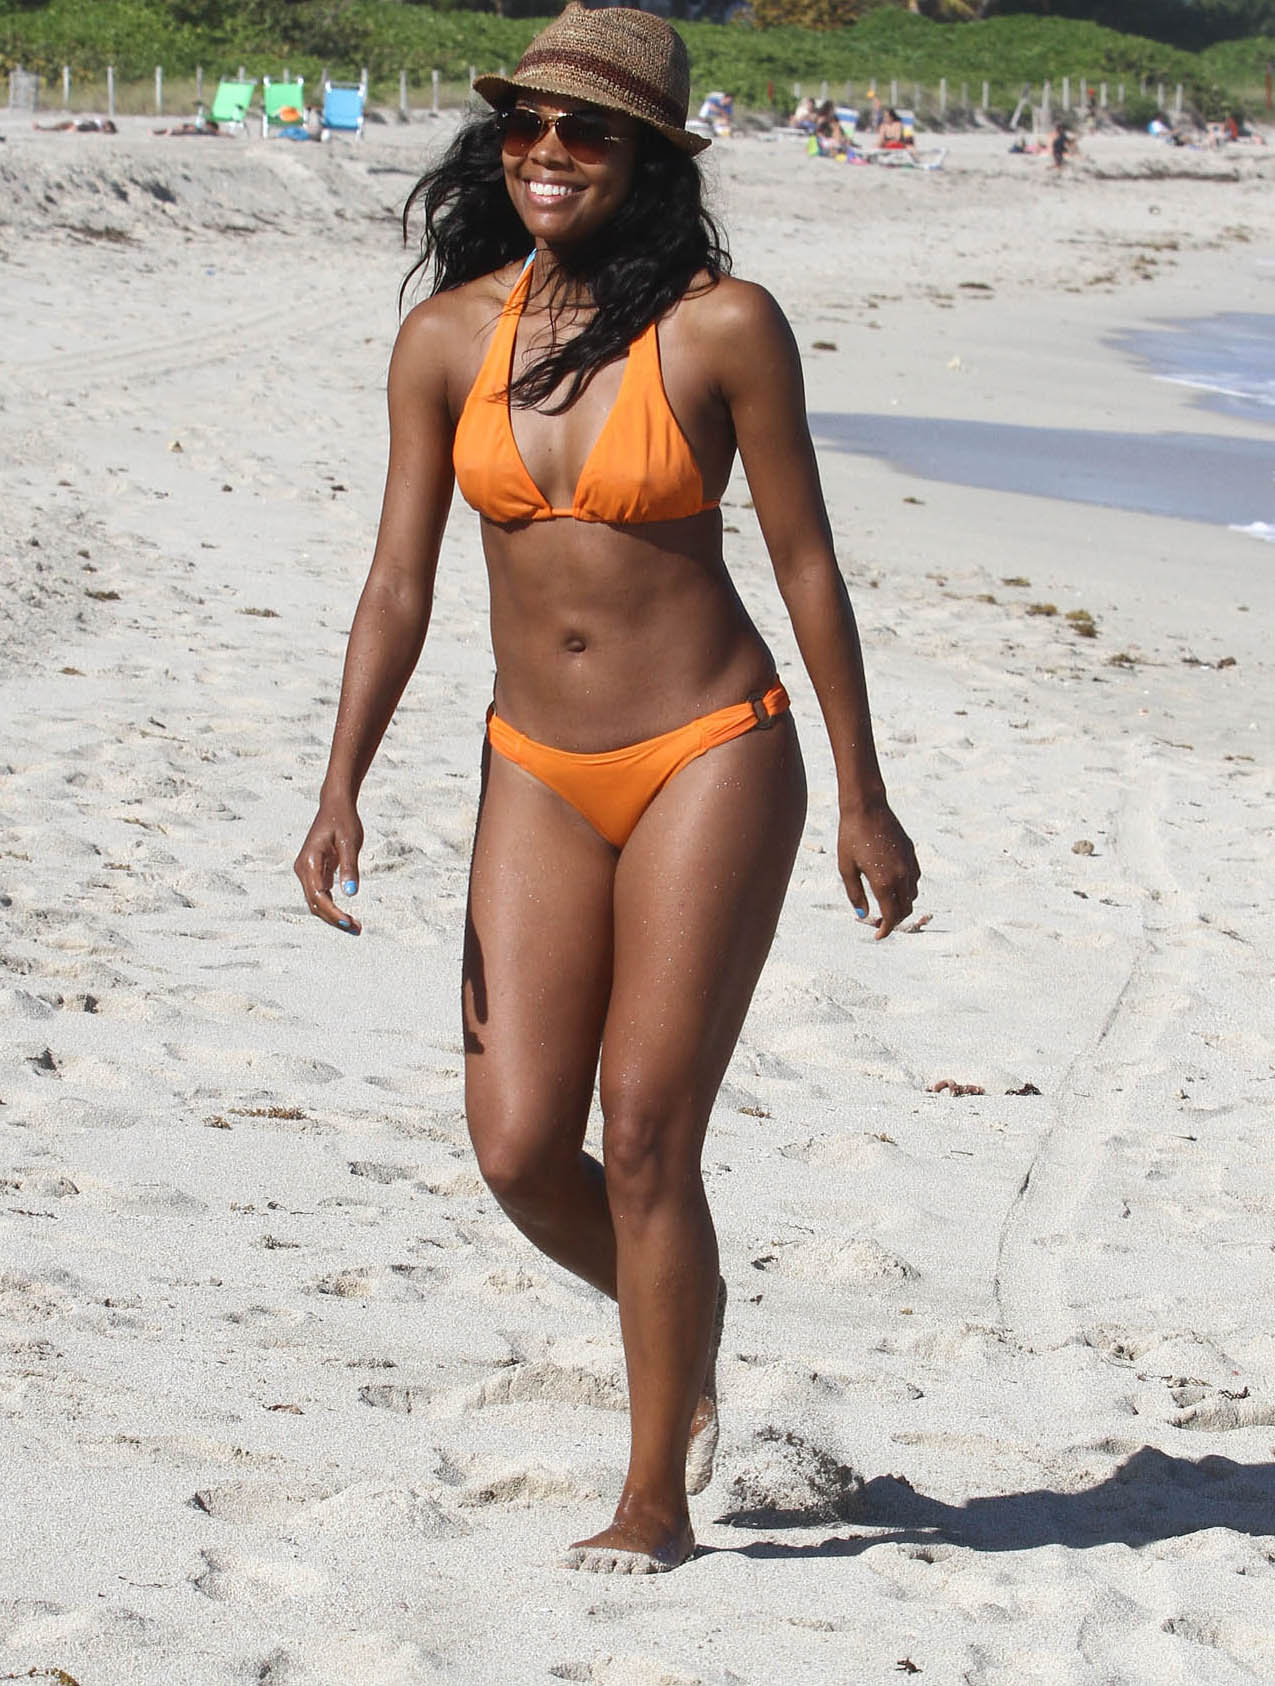 Gabrielle Union's Bikini Photos